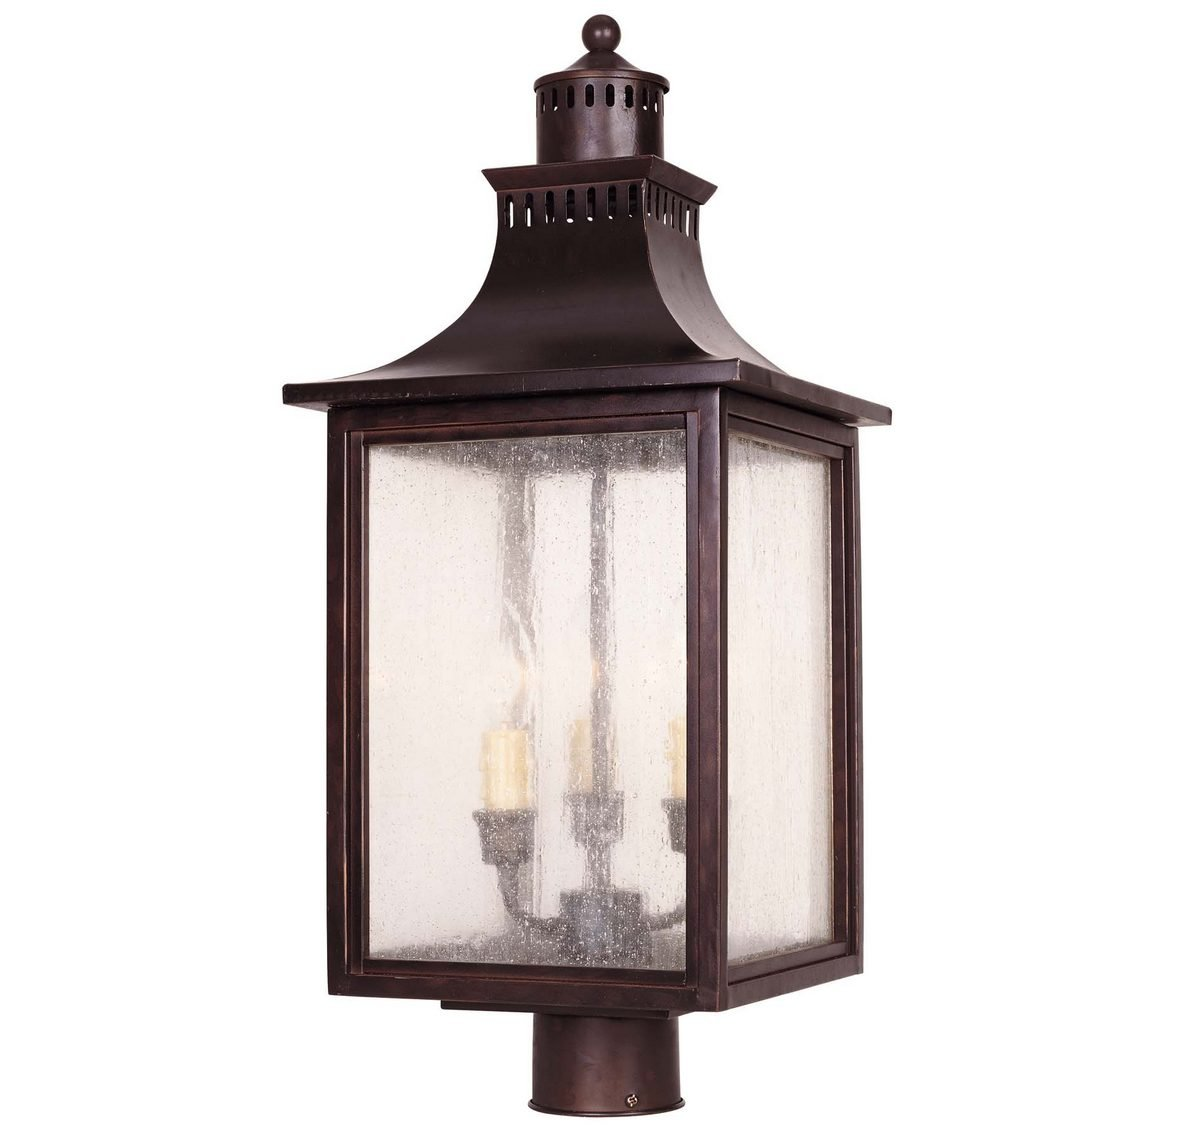 Savoy House Lighting 5-255-13  Monte Grande Collection 3-Light Outdoor Post Mount Lantern, English Bronze Finish with Pale Cream Seeded Glass